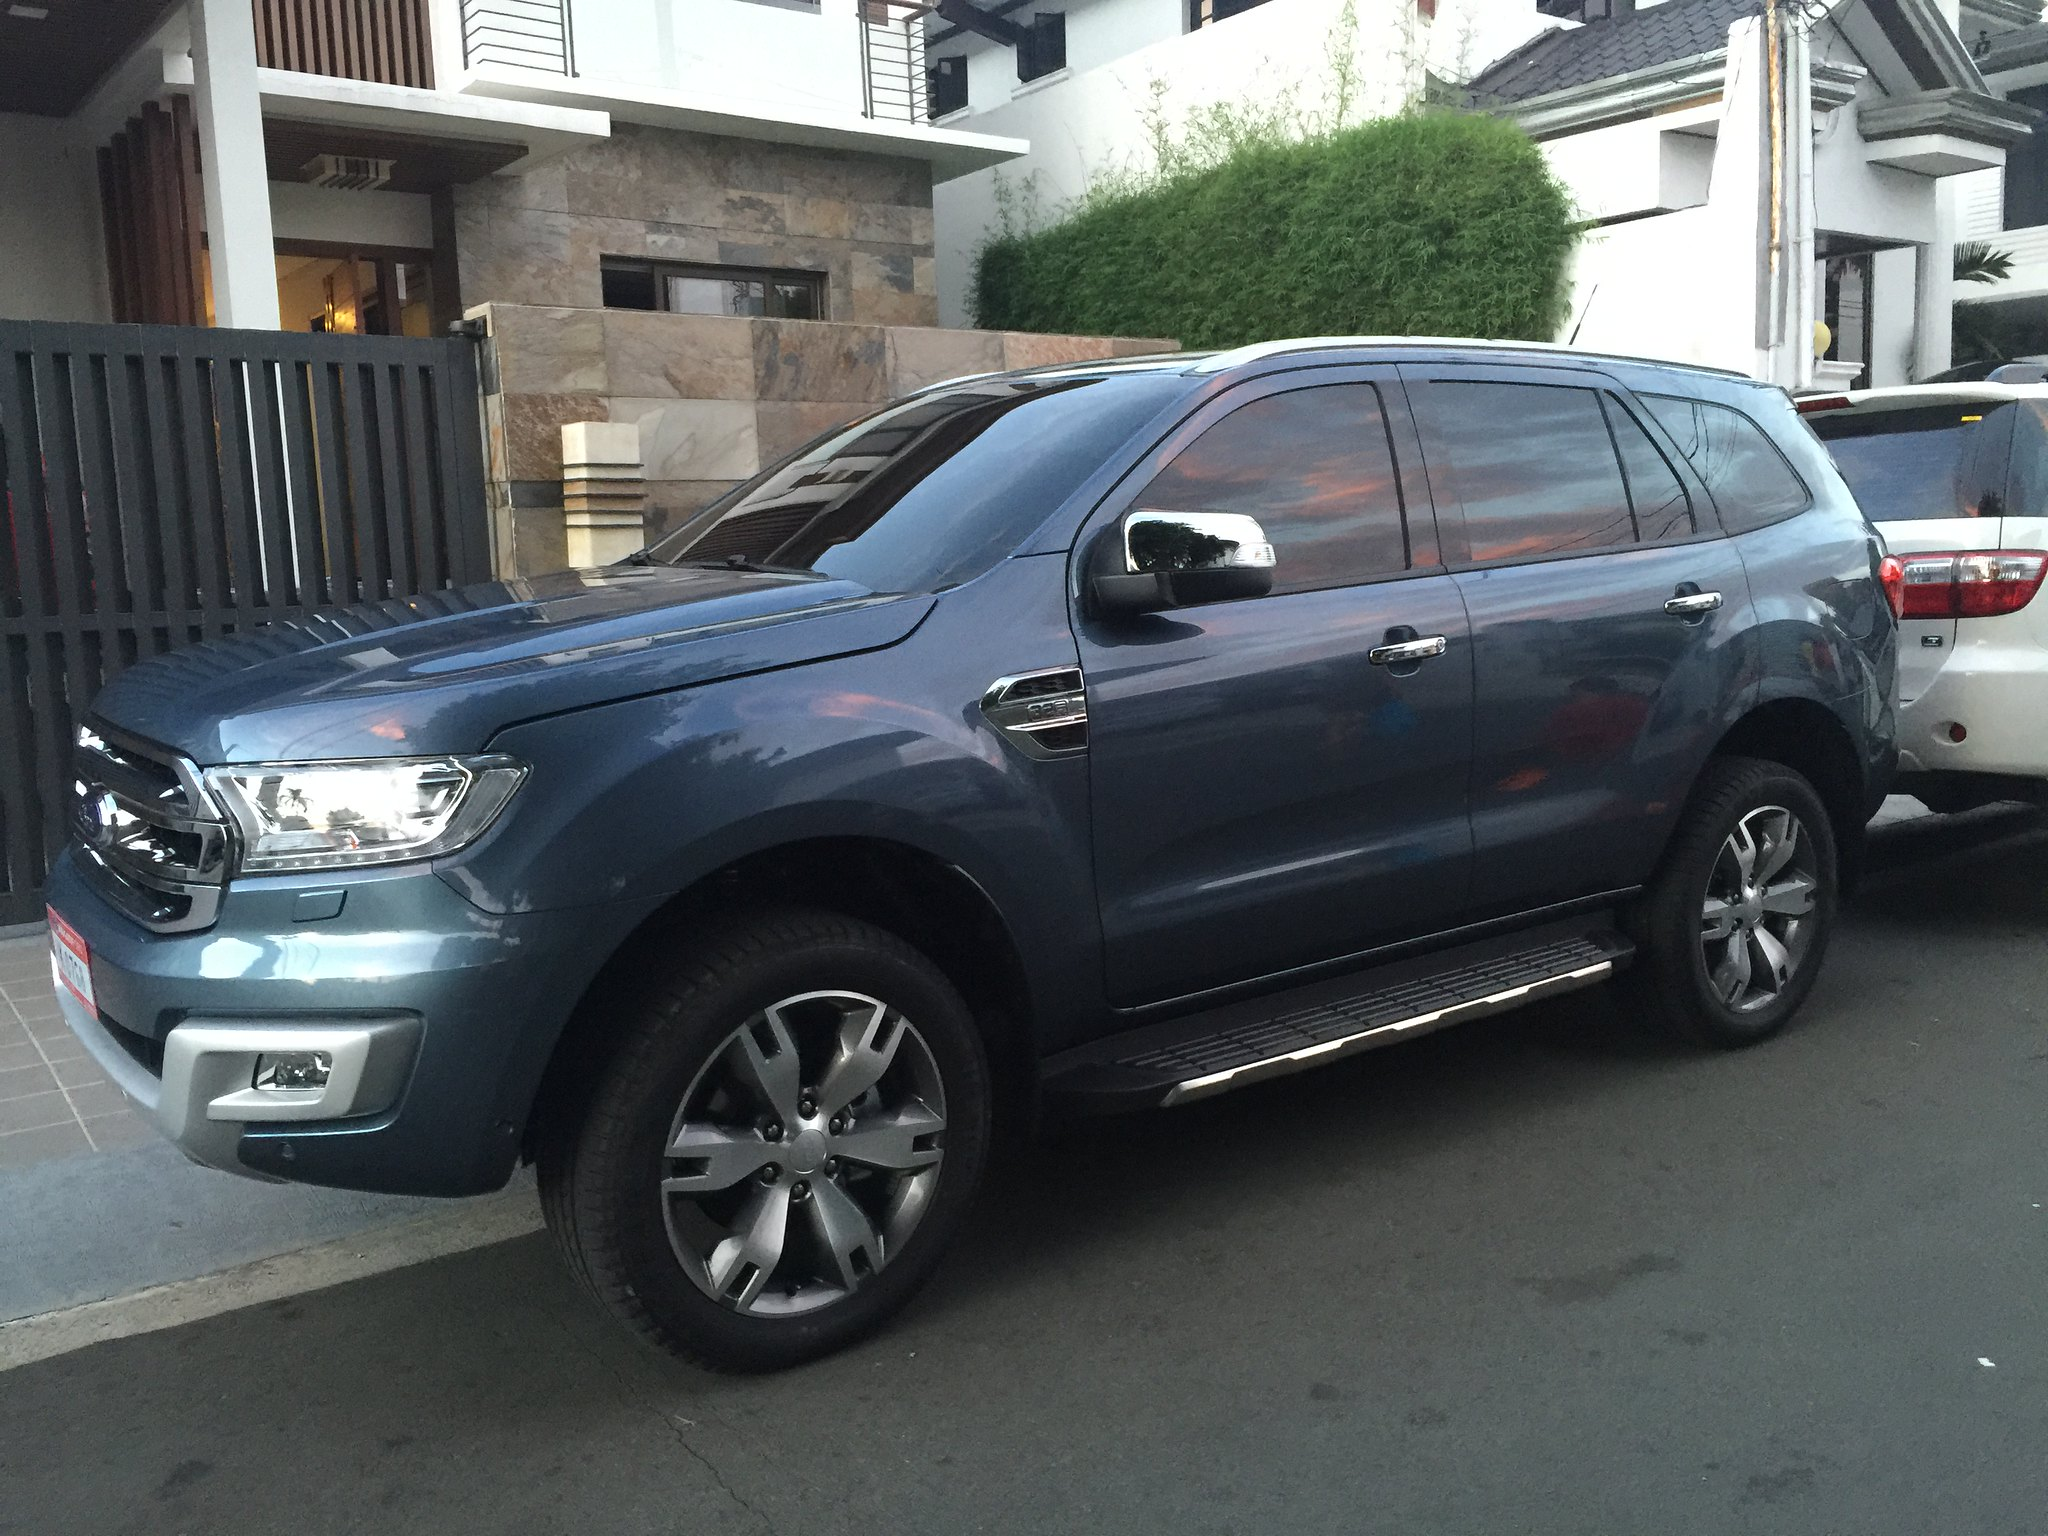 2015 ford everest reviews - The New 2015 Ford Everest Fcp Review